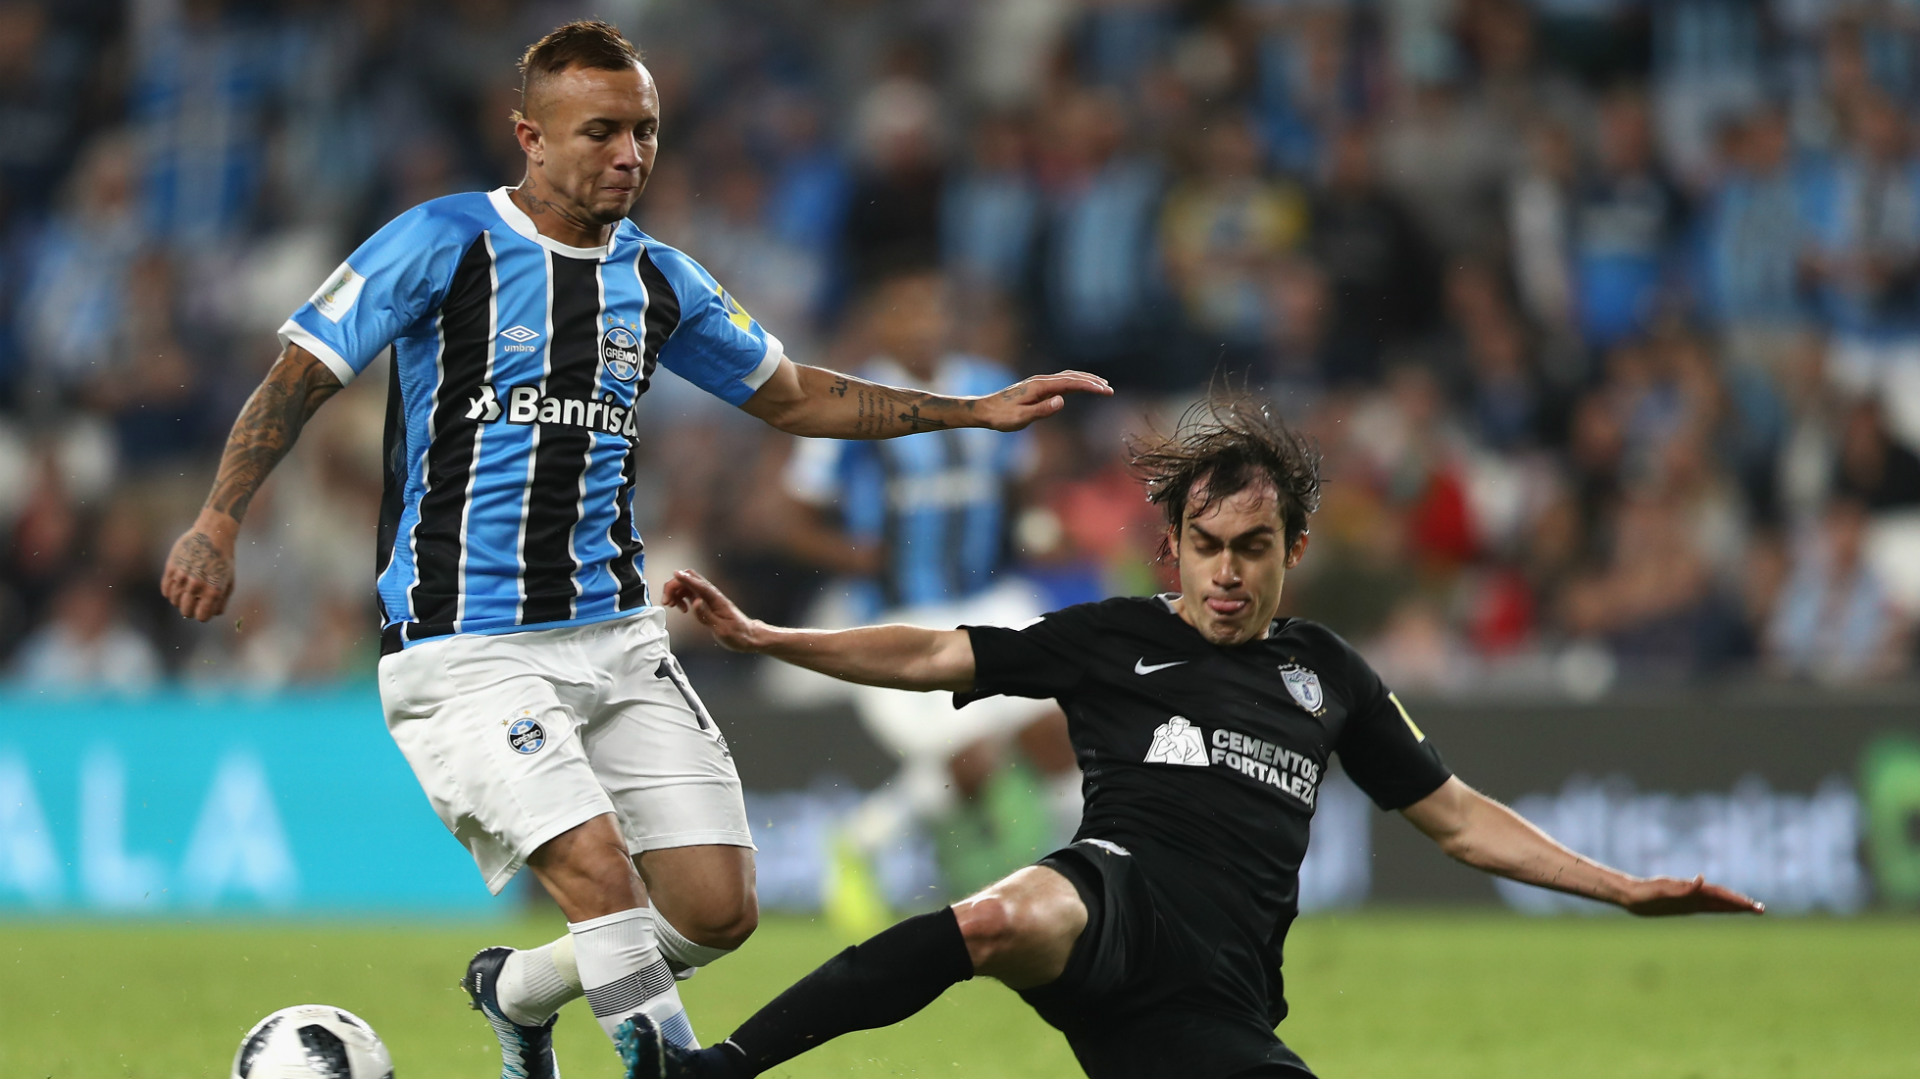 Brazilian side Gremio top Pachuca in Club World Cup semi